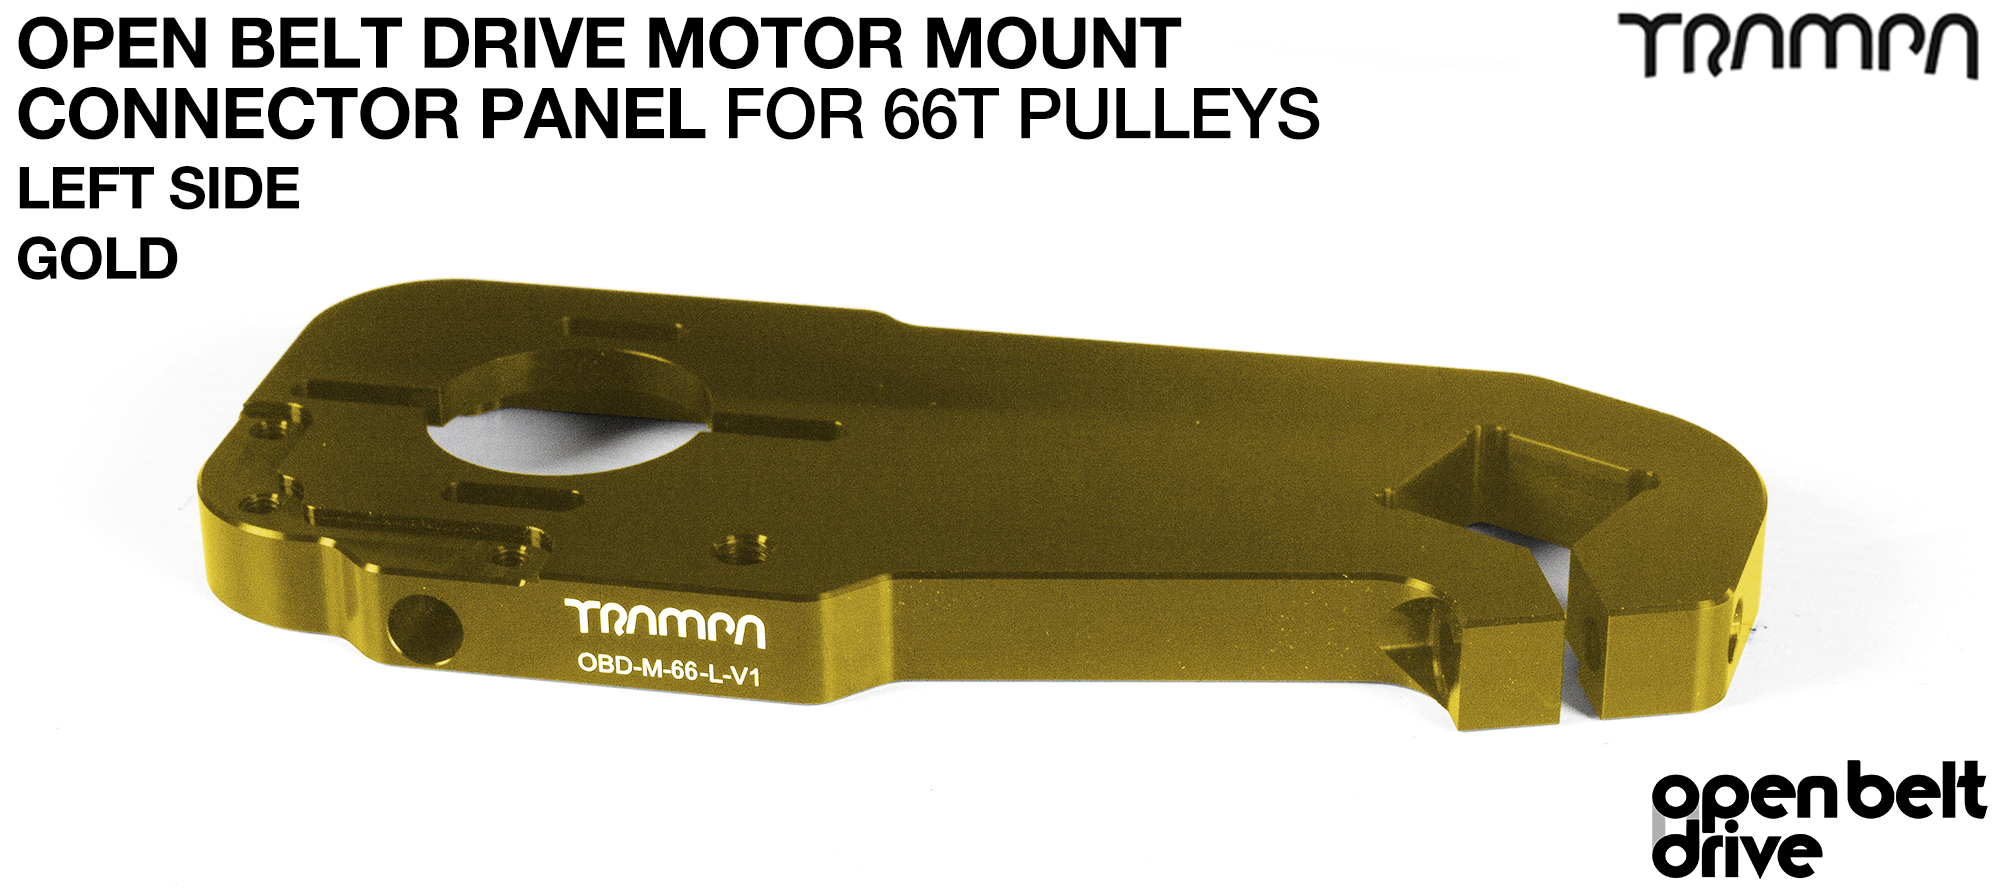 GOLD 66T TWIN OBD Motor Mount Panels